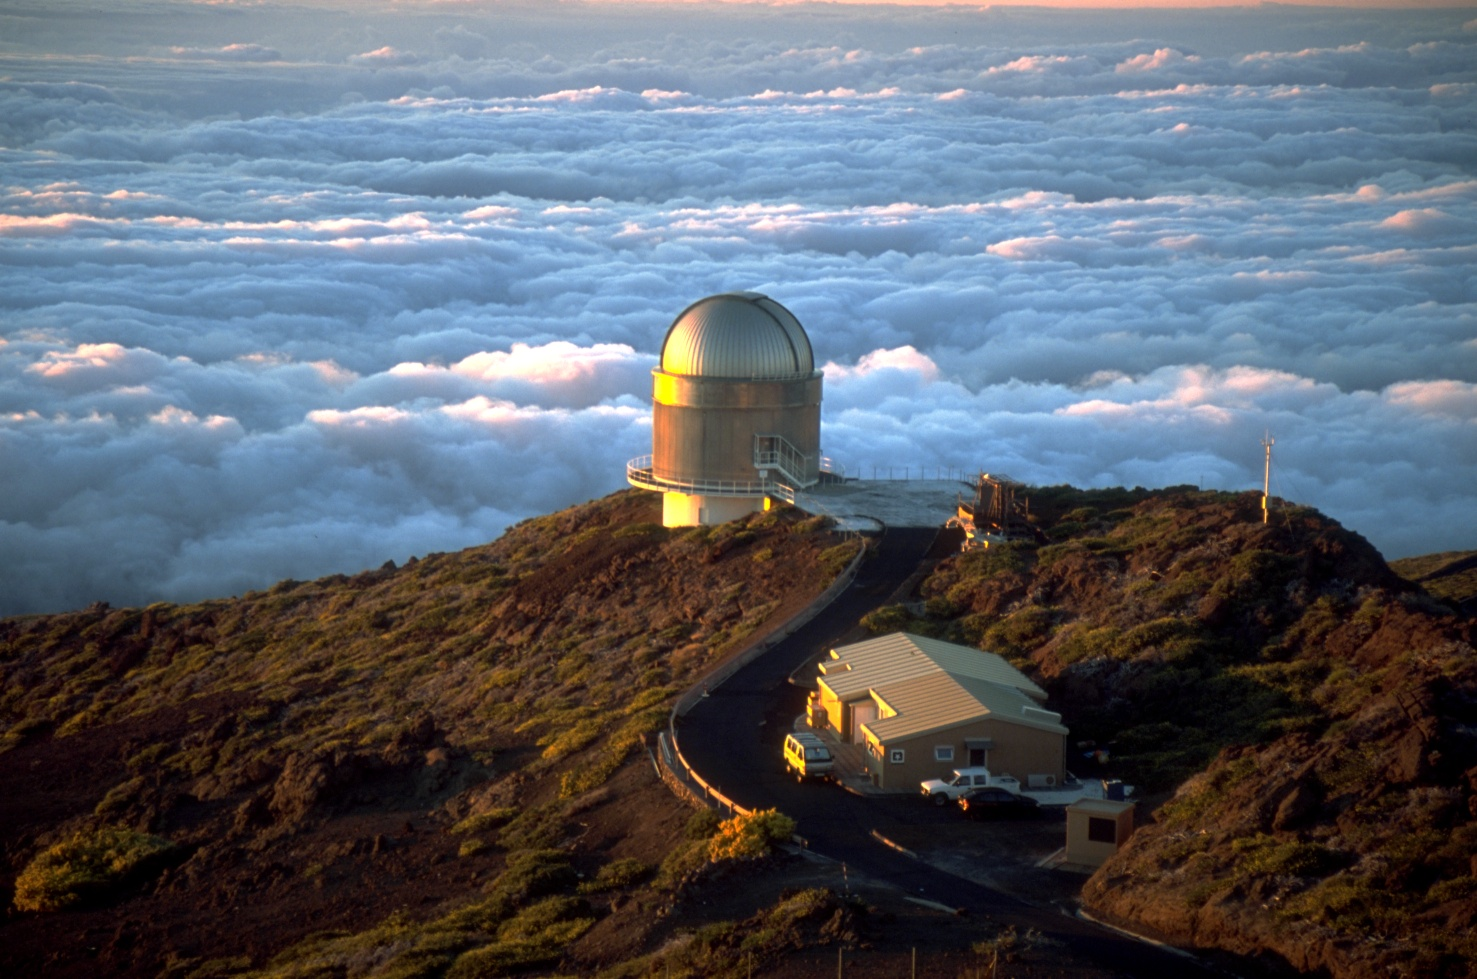 The Nordic Optical Telescope (NOT) telescope at Roque de los Muchachos Observatory in June 2001, by Bob Tubbs, via Wikimedia Commons